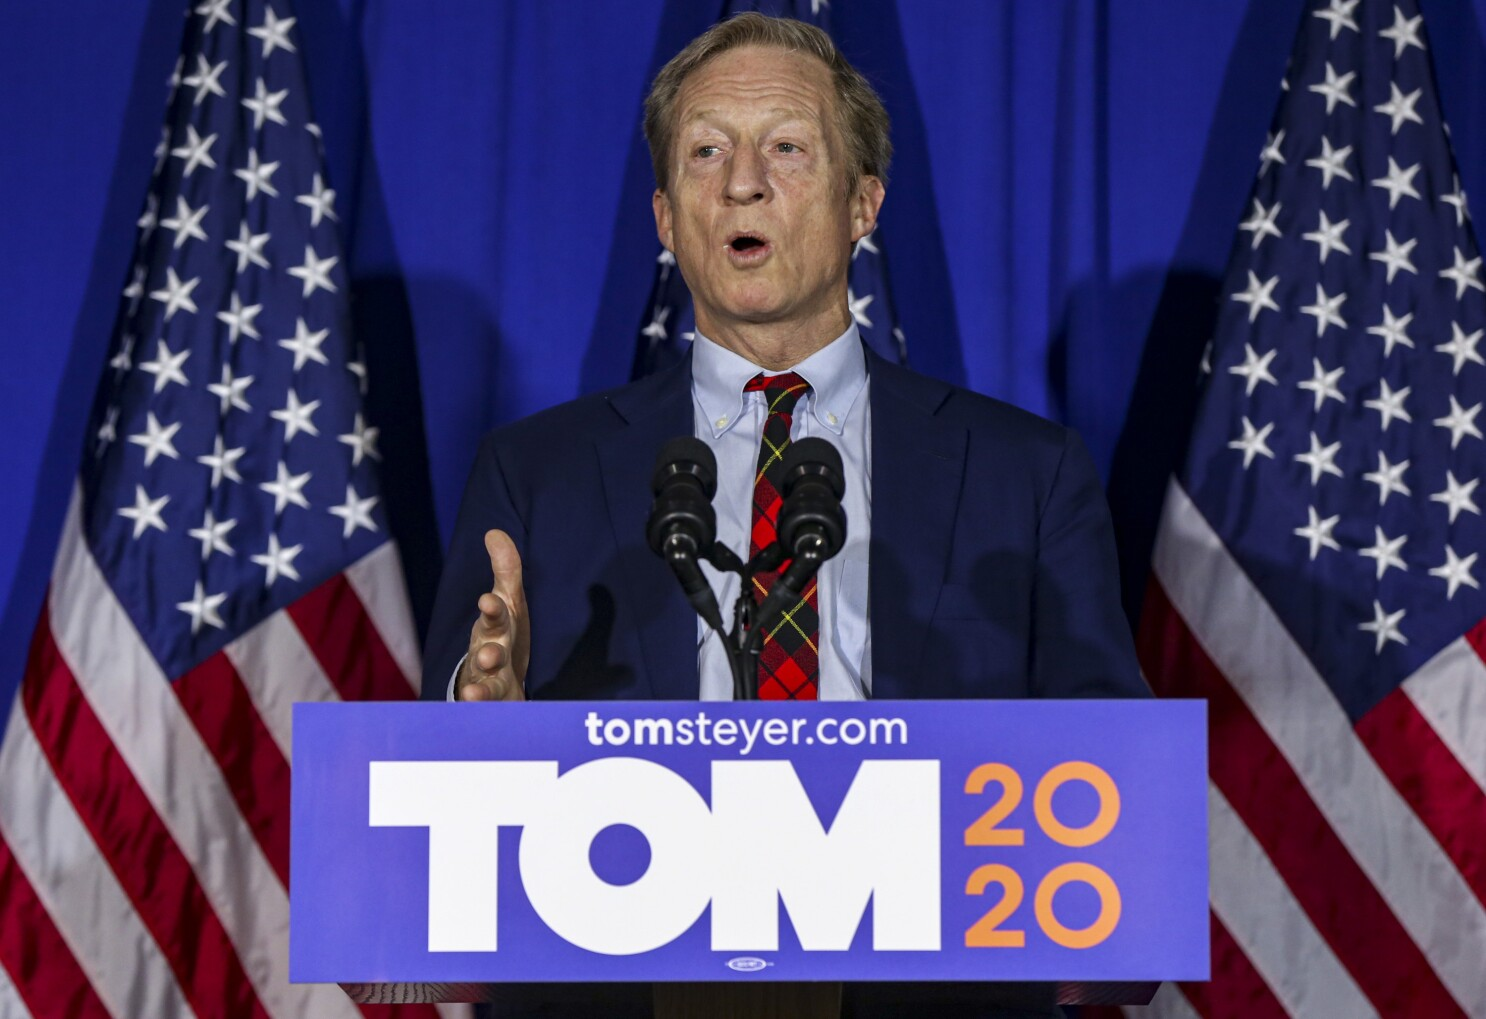 Boycott tom steyer investments and companies forex accounts